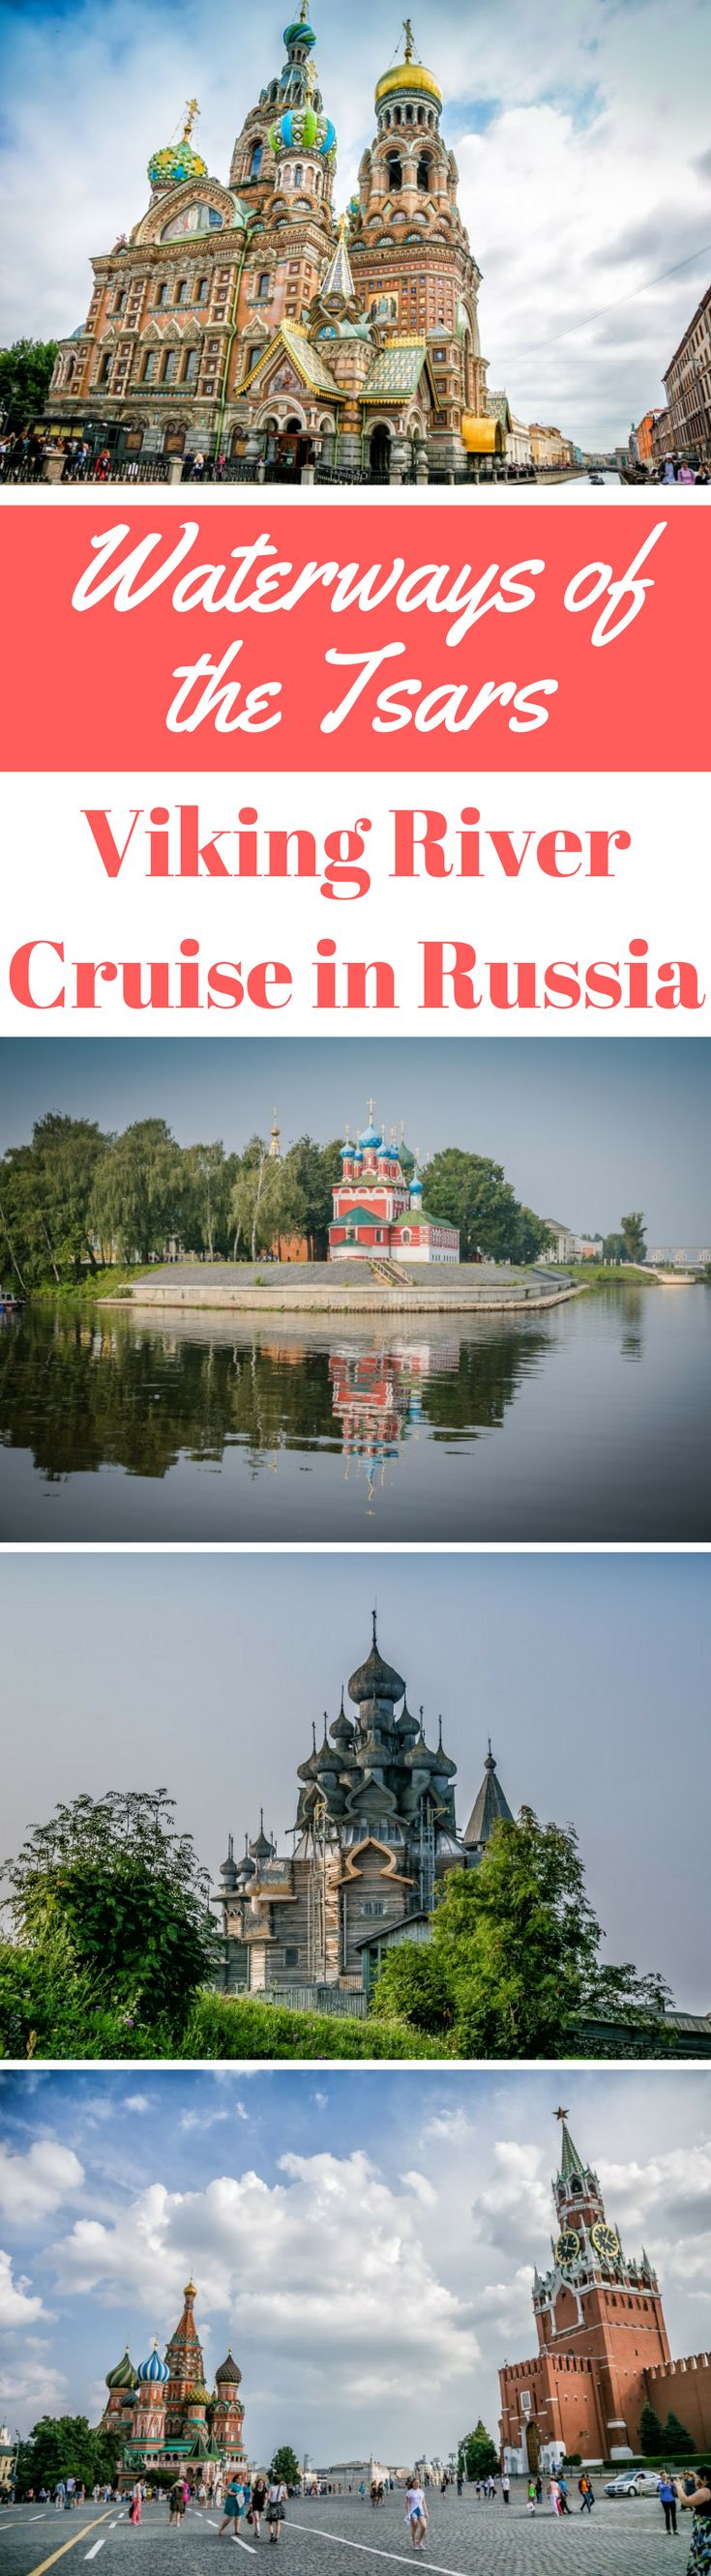 Waterways of the Tsars – Viking River Cruise in Russia. Let us take you through northwest Russia as we start our journey in historical St Petersburg and spend 13 days cruising the Volga River before landing in Moscow with Viking River Cruise. Click to read more by the Divergent Travelers Adventure Travel Blog, America's Adventure Couple. #Russia #Travel #Moscow #Stpetersburg #VikingRiverCruise #Cruise